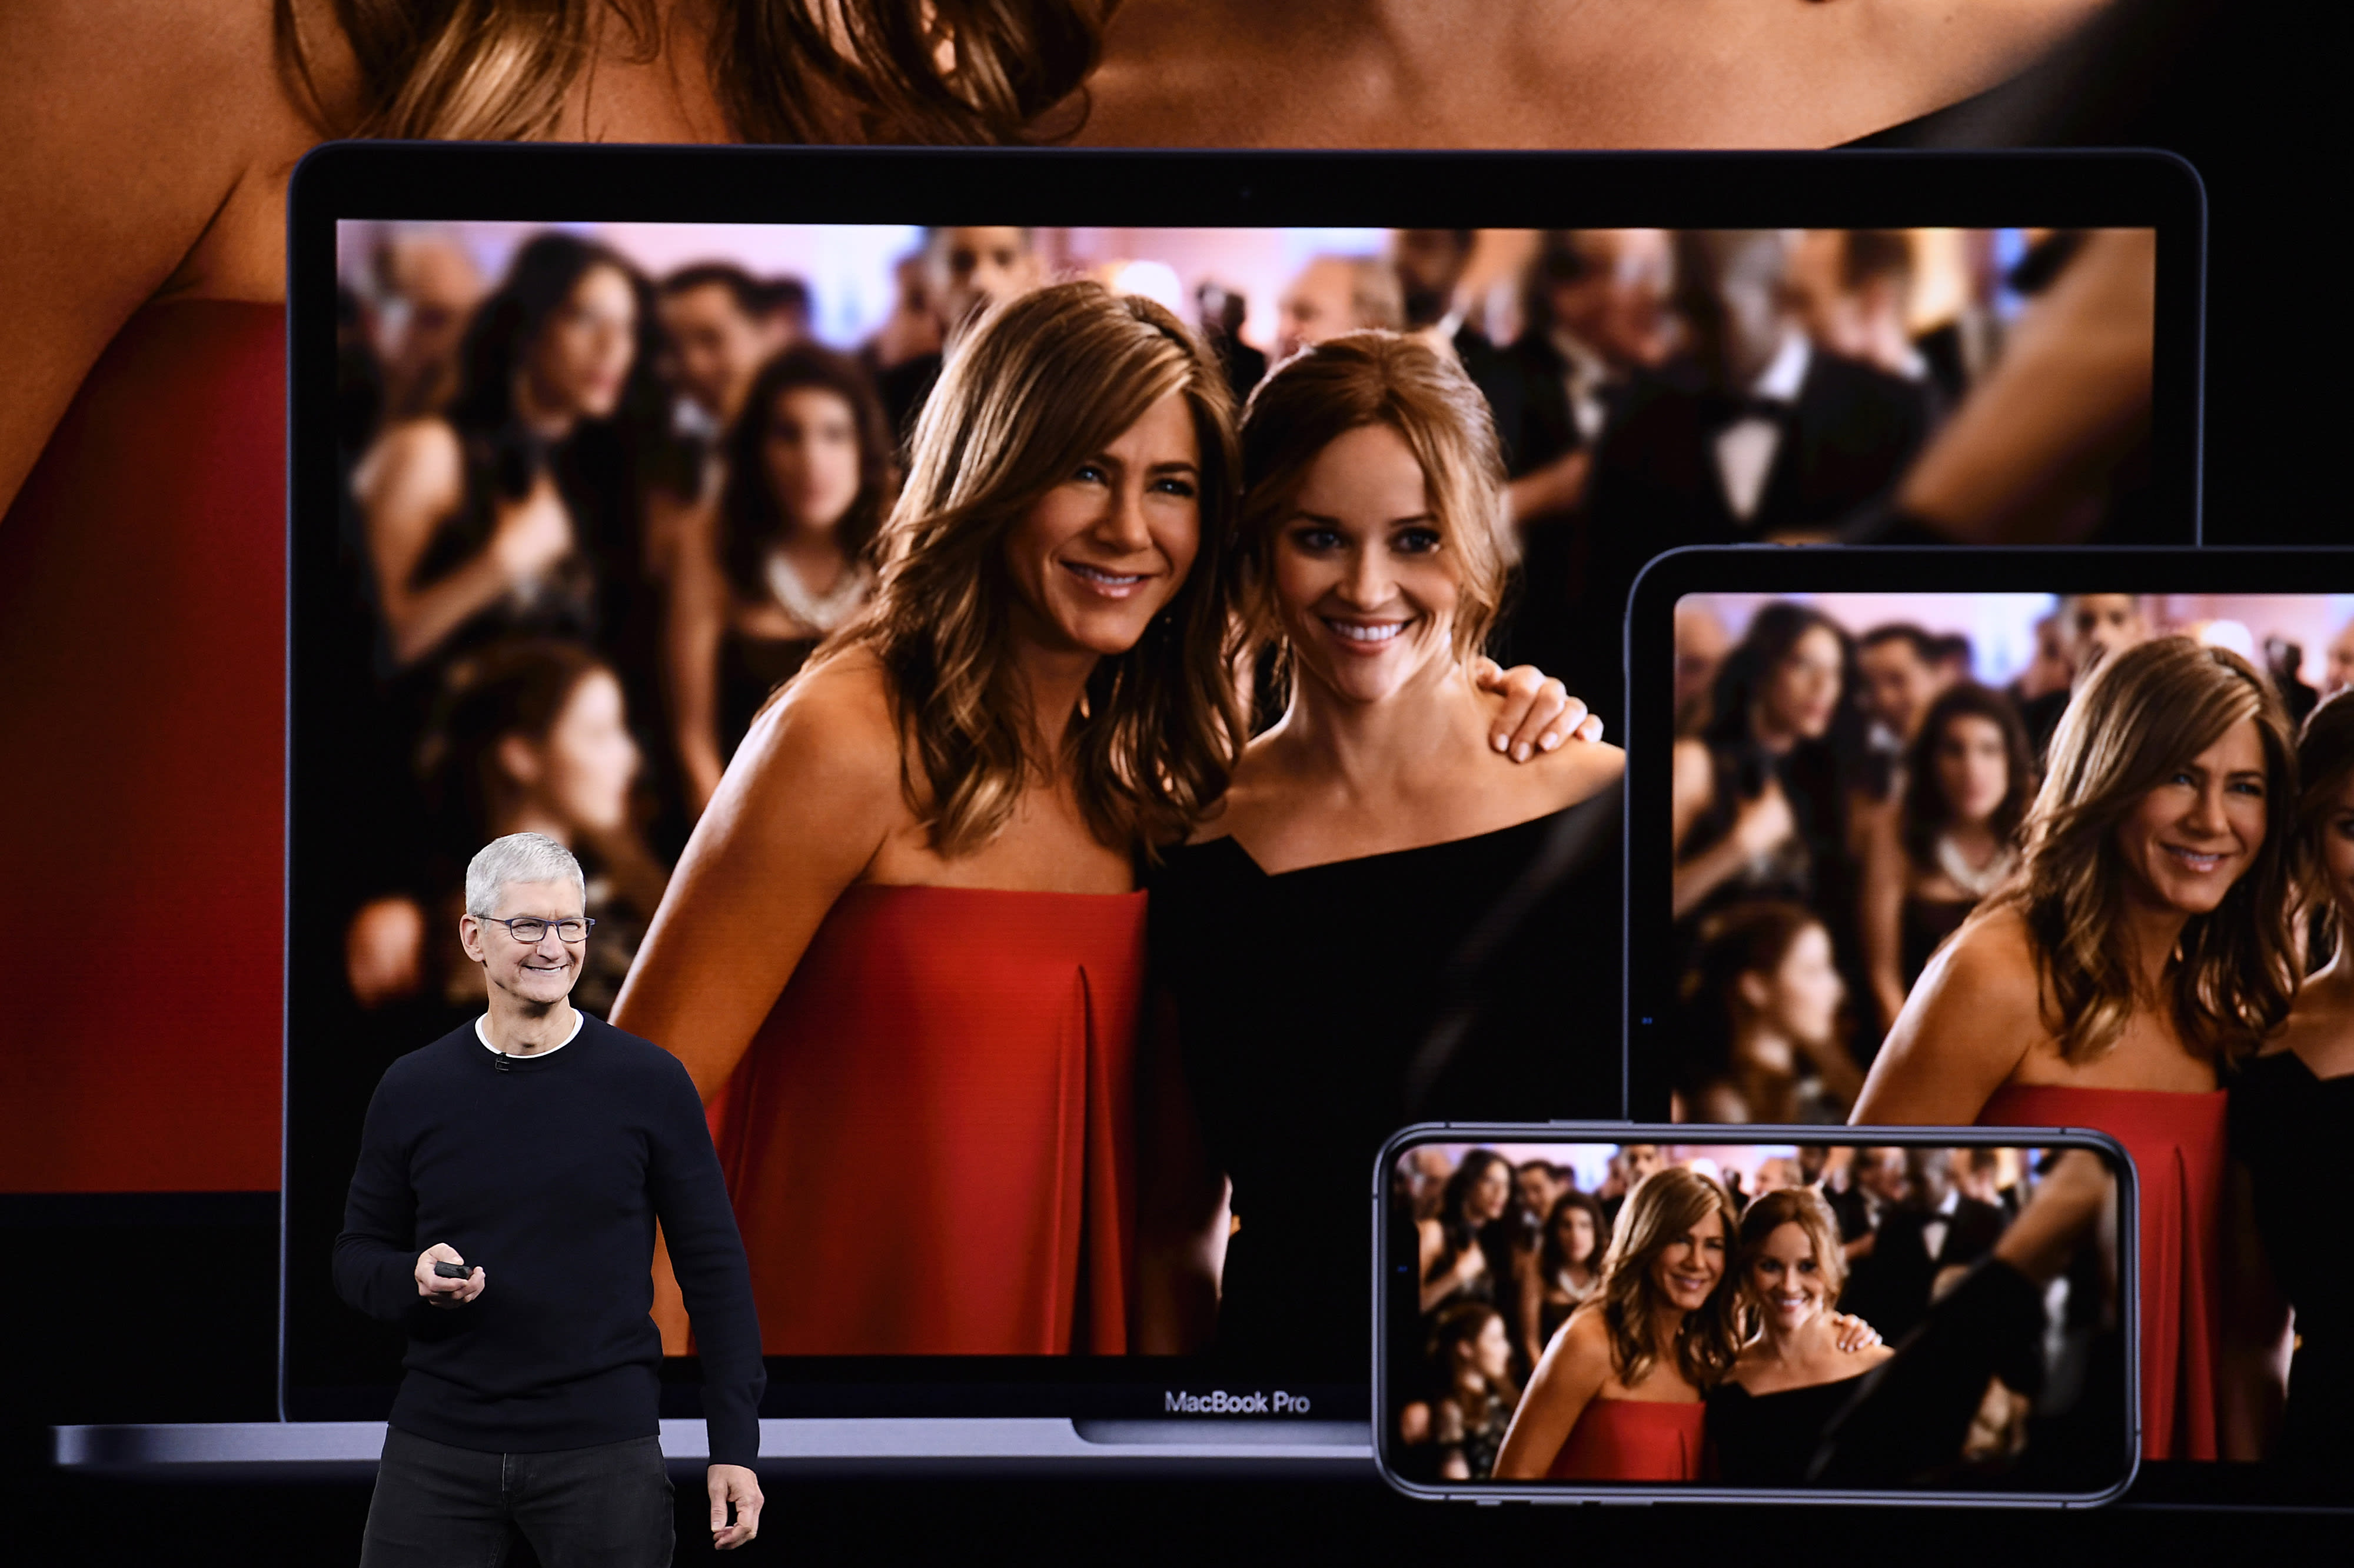 Apple TV+ pricing vs. Disney, Hulu, CBS, and others